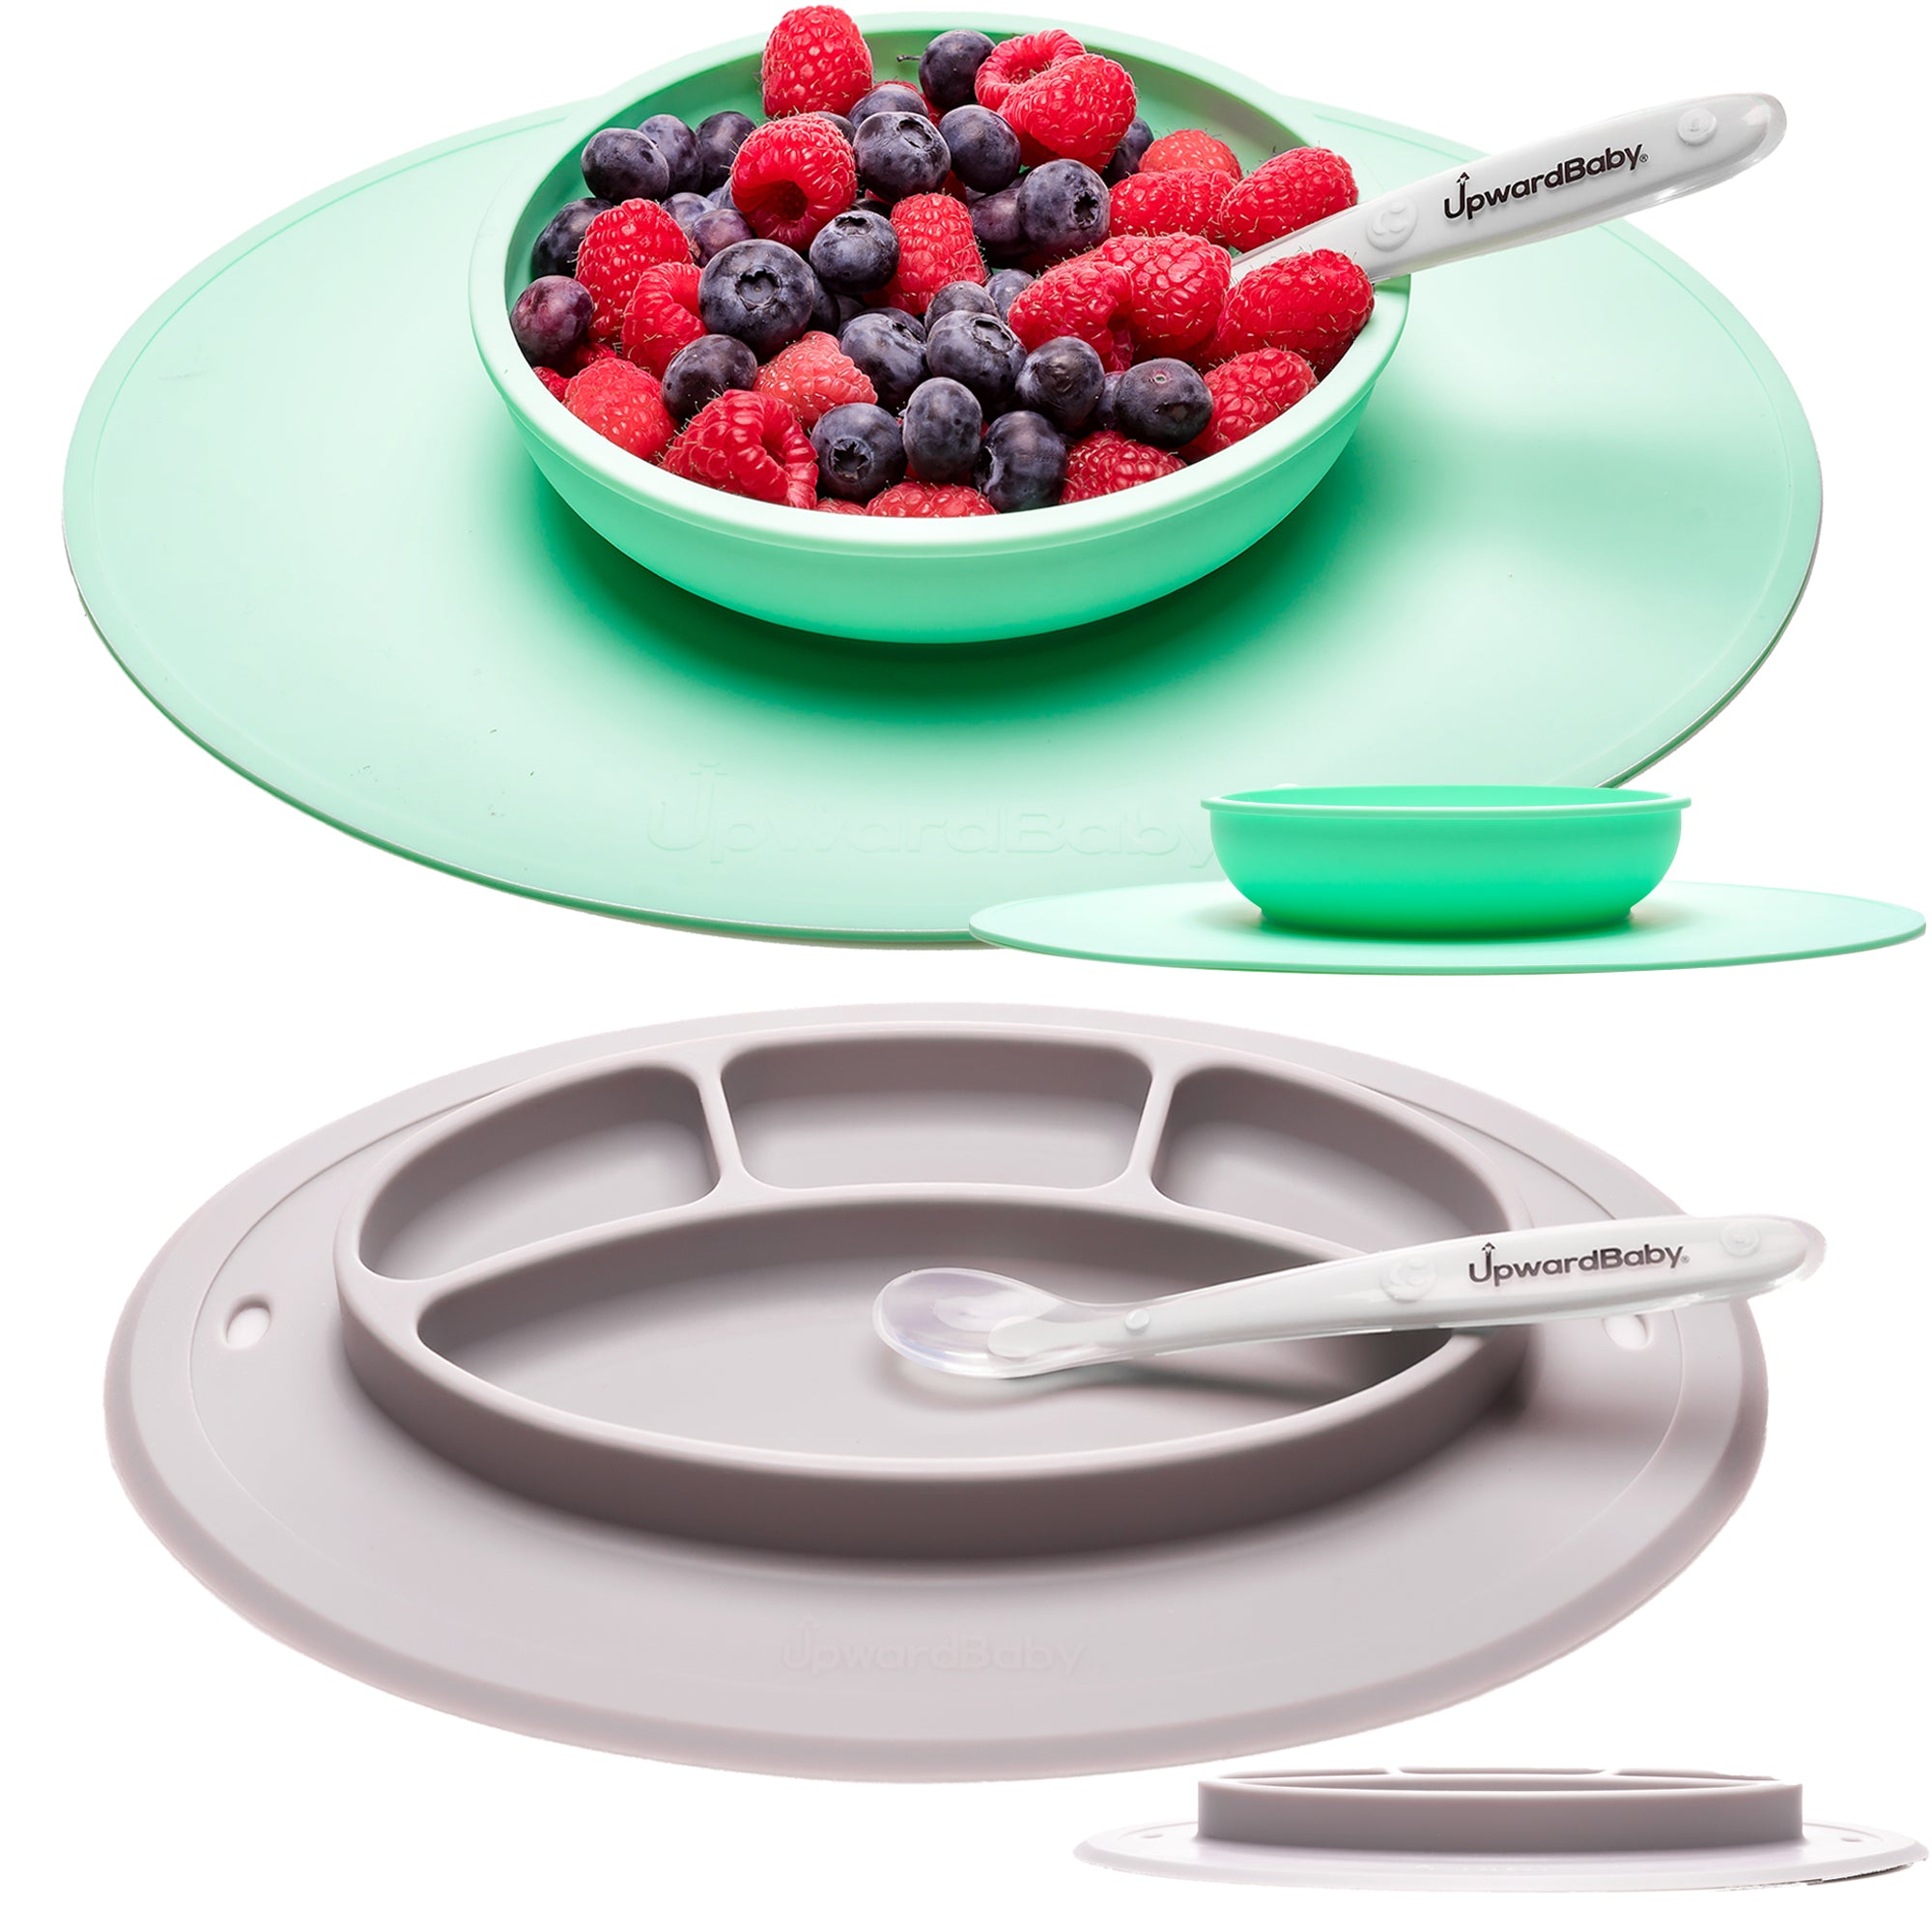 UpwardBaby Toddler and Baby Suction Bowl and Plate Set